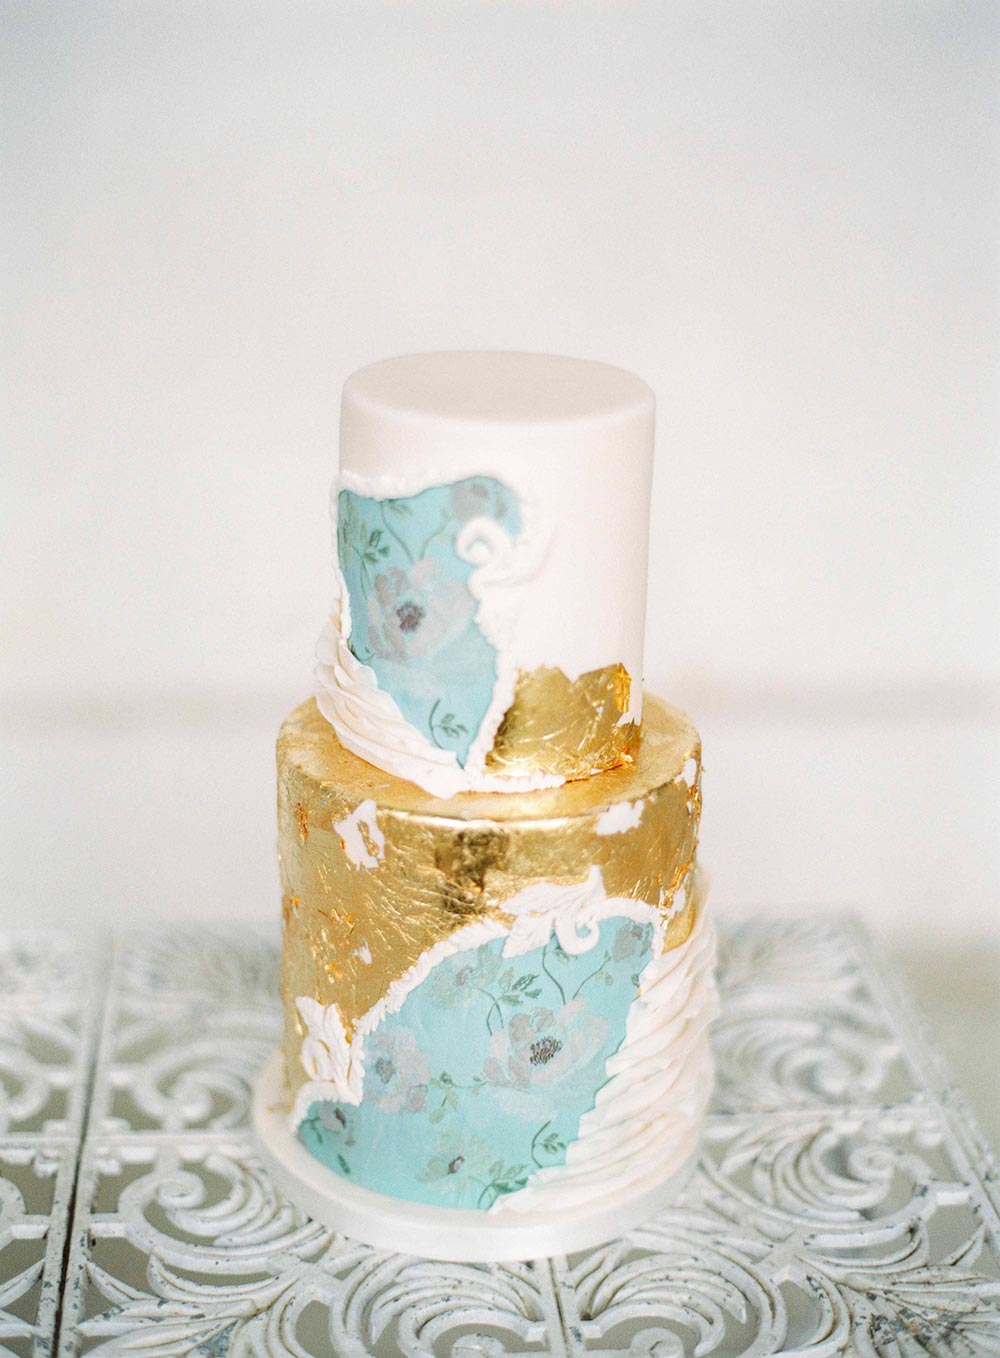 gold leaf wedding cake with blue paint